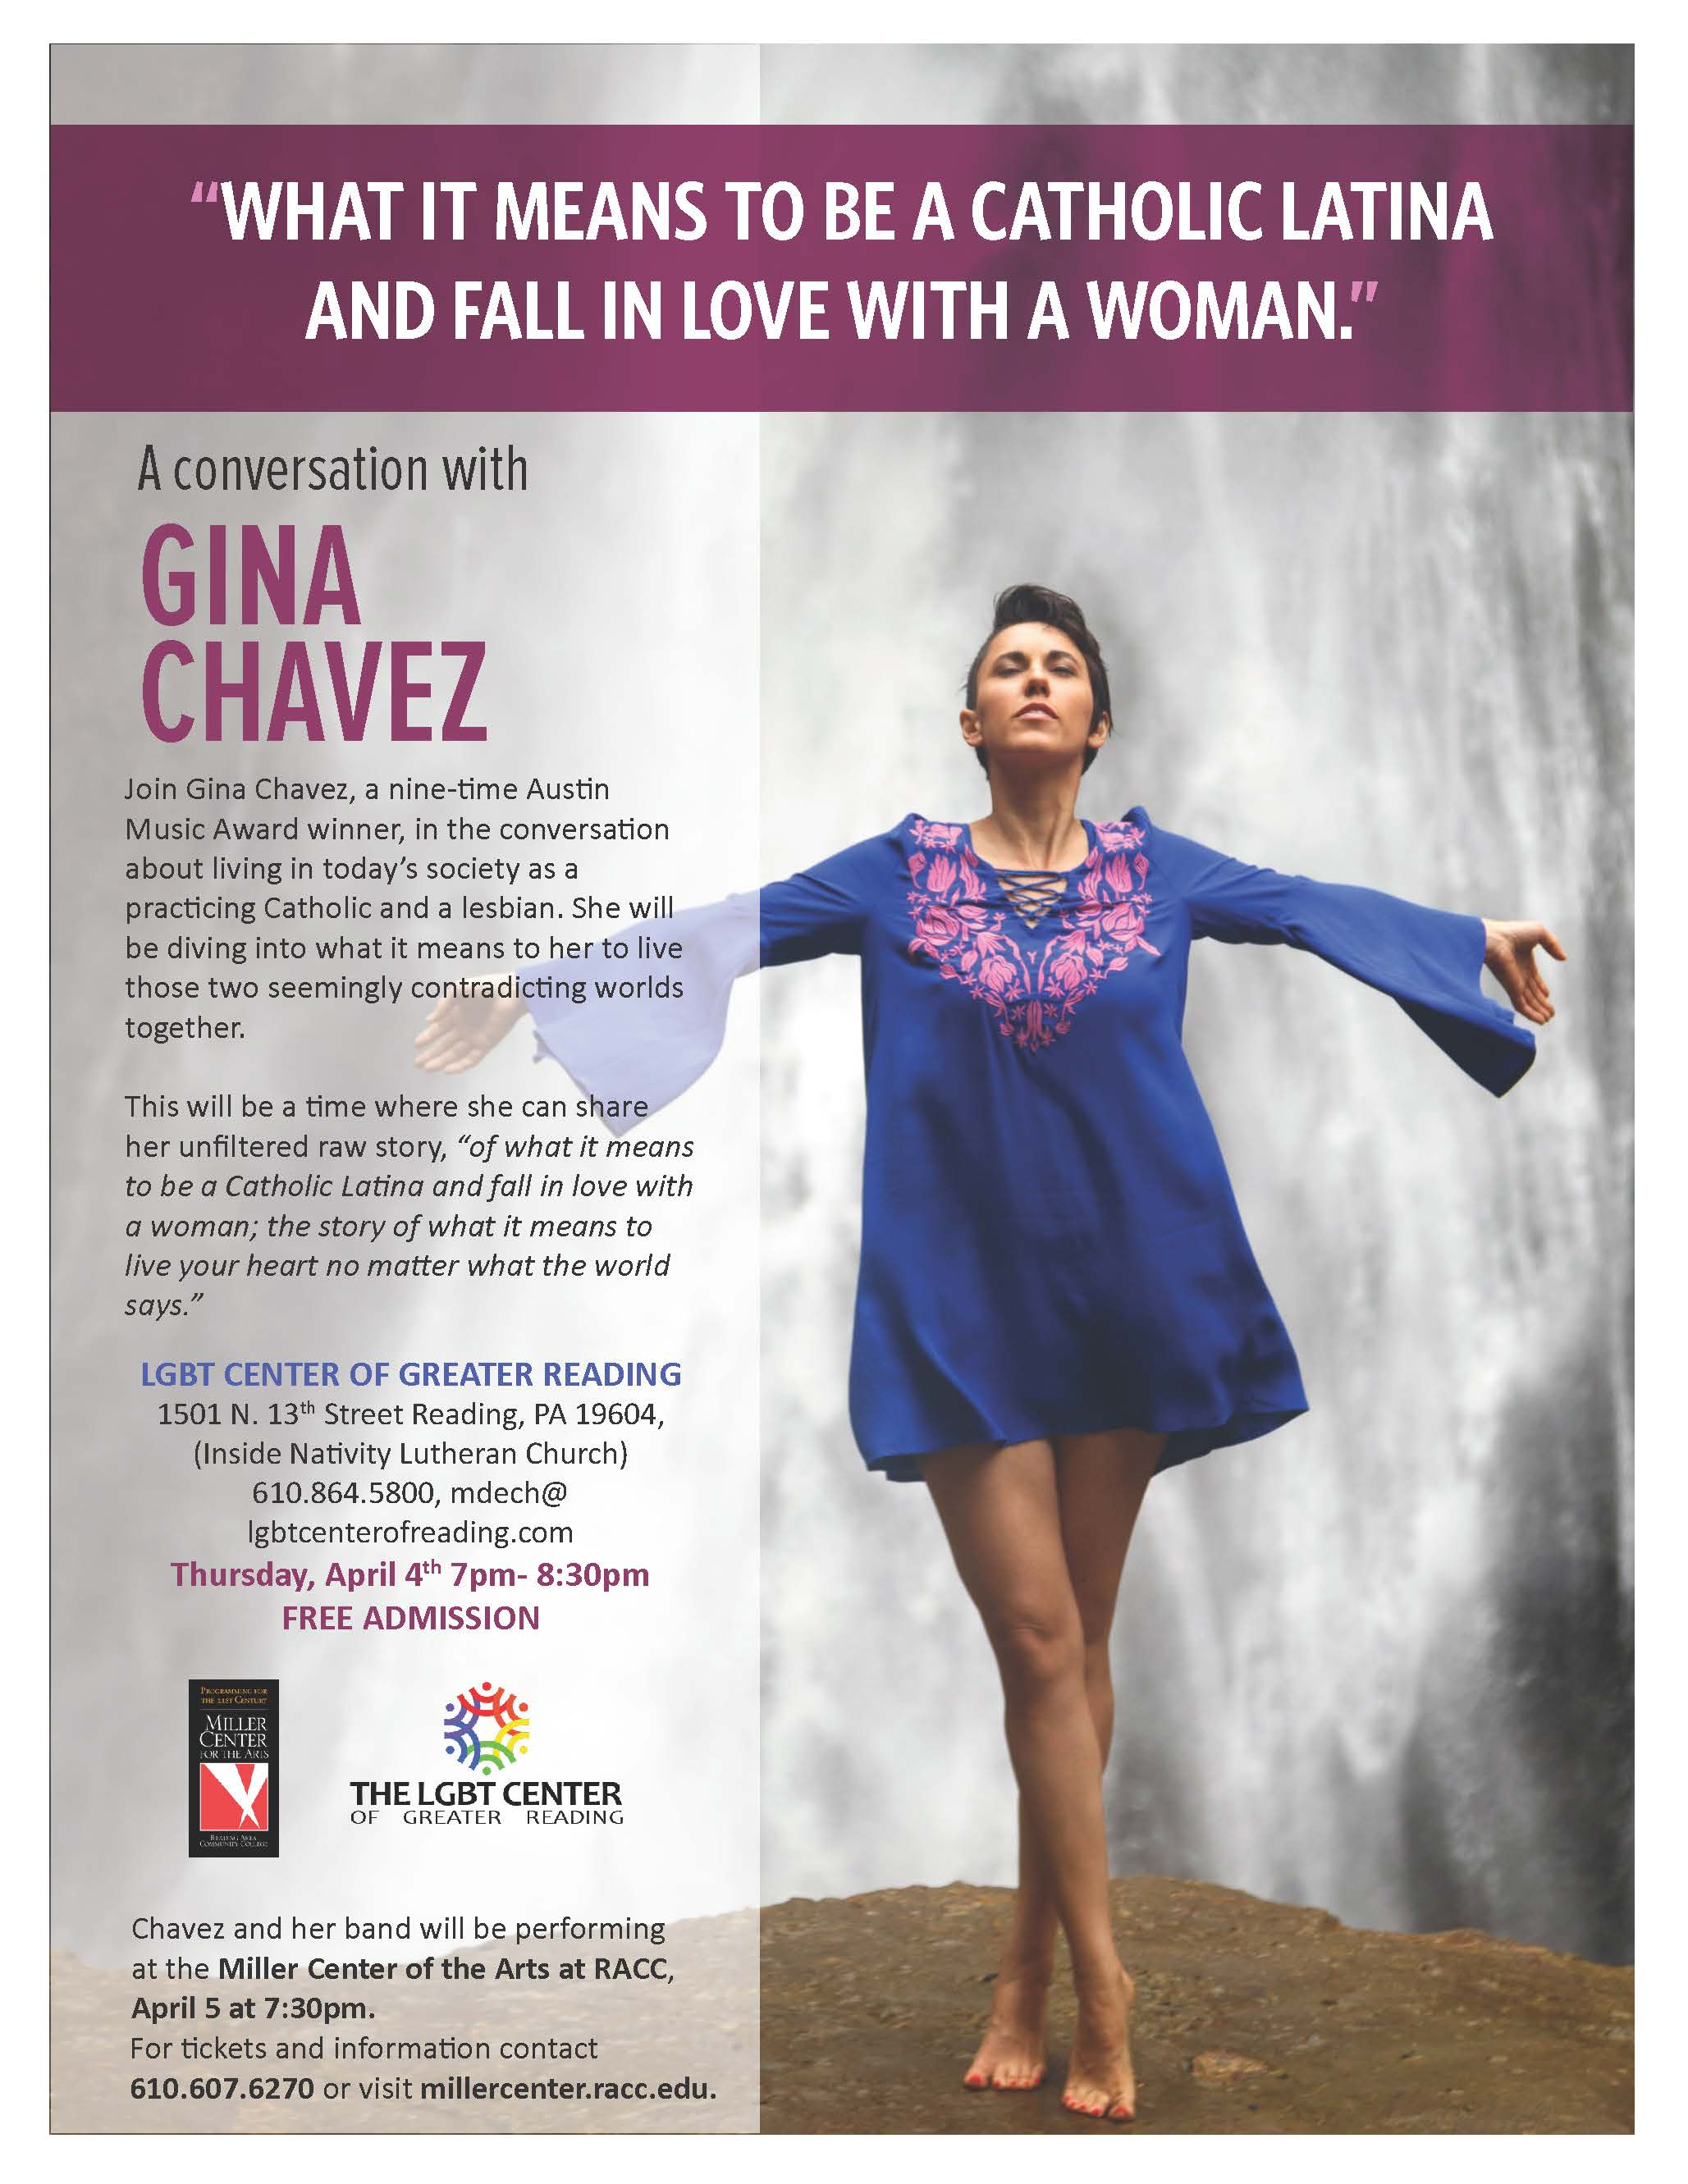 GinaChavez_flyer_English (1)  (1).jpg